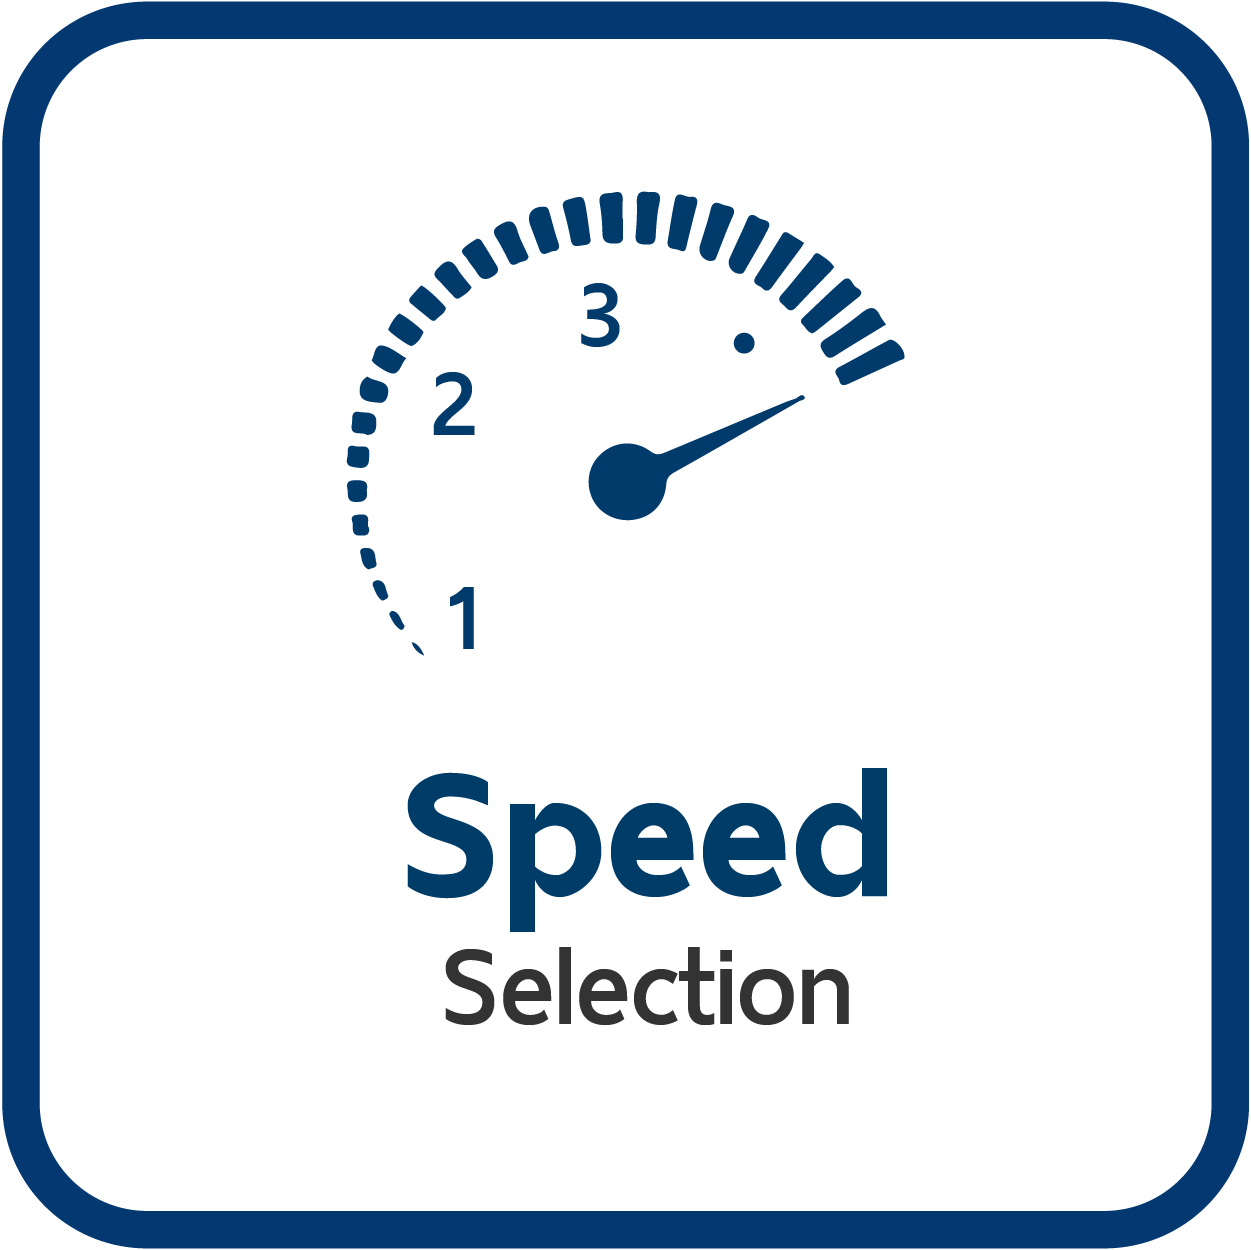 3 Speed Selection